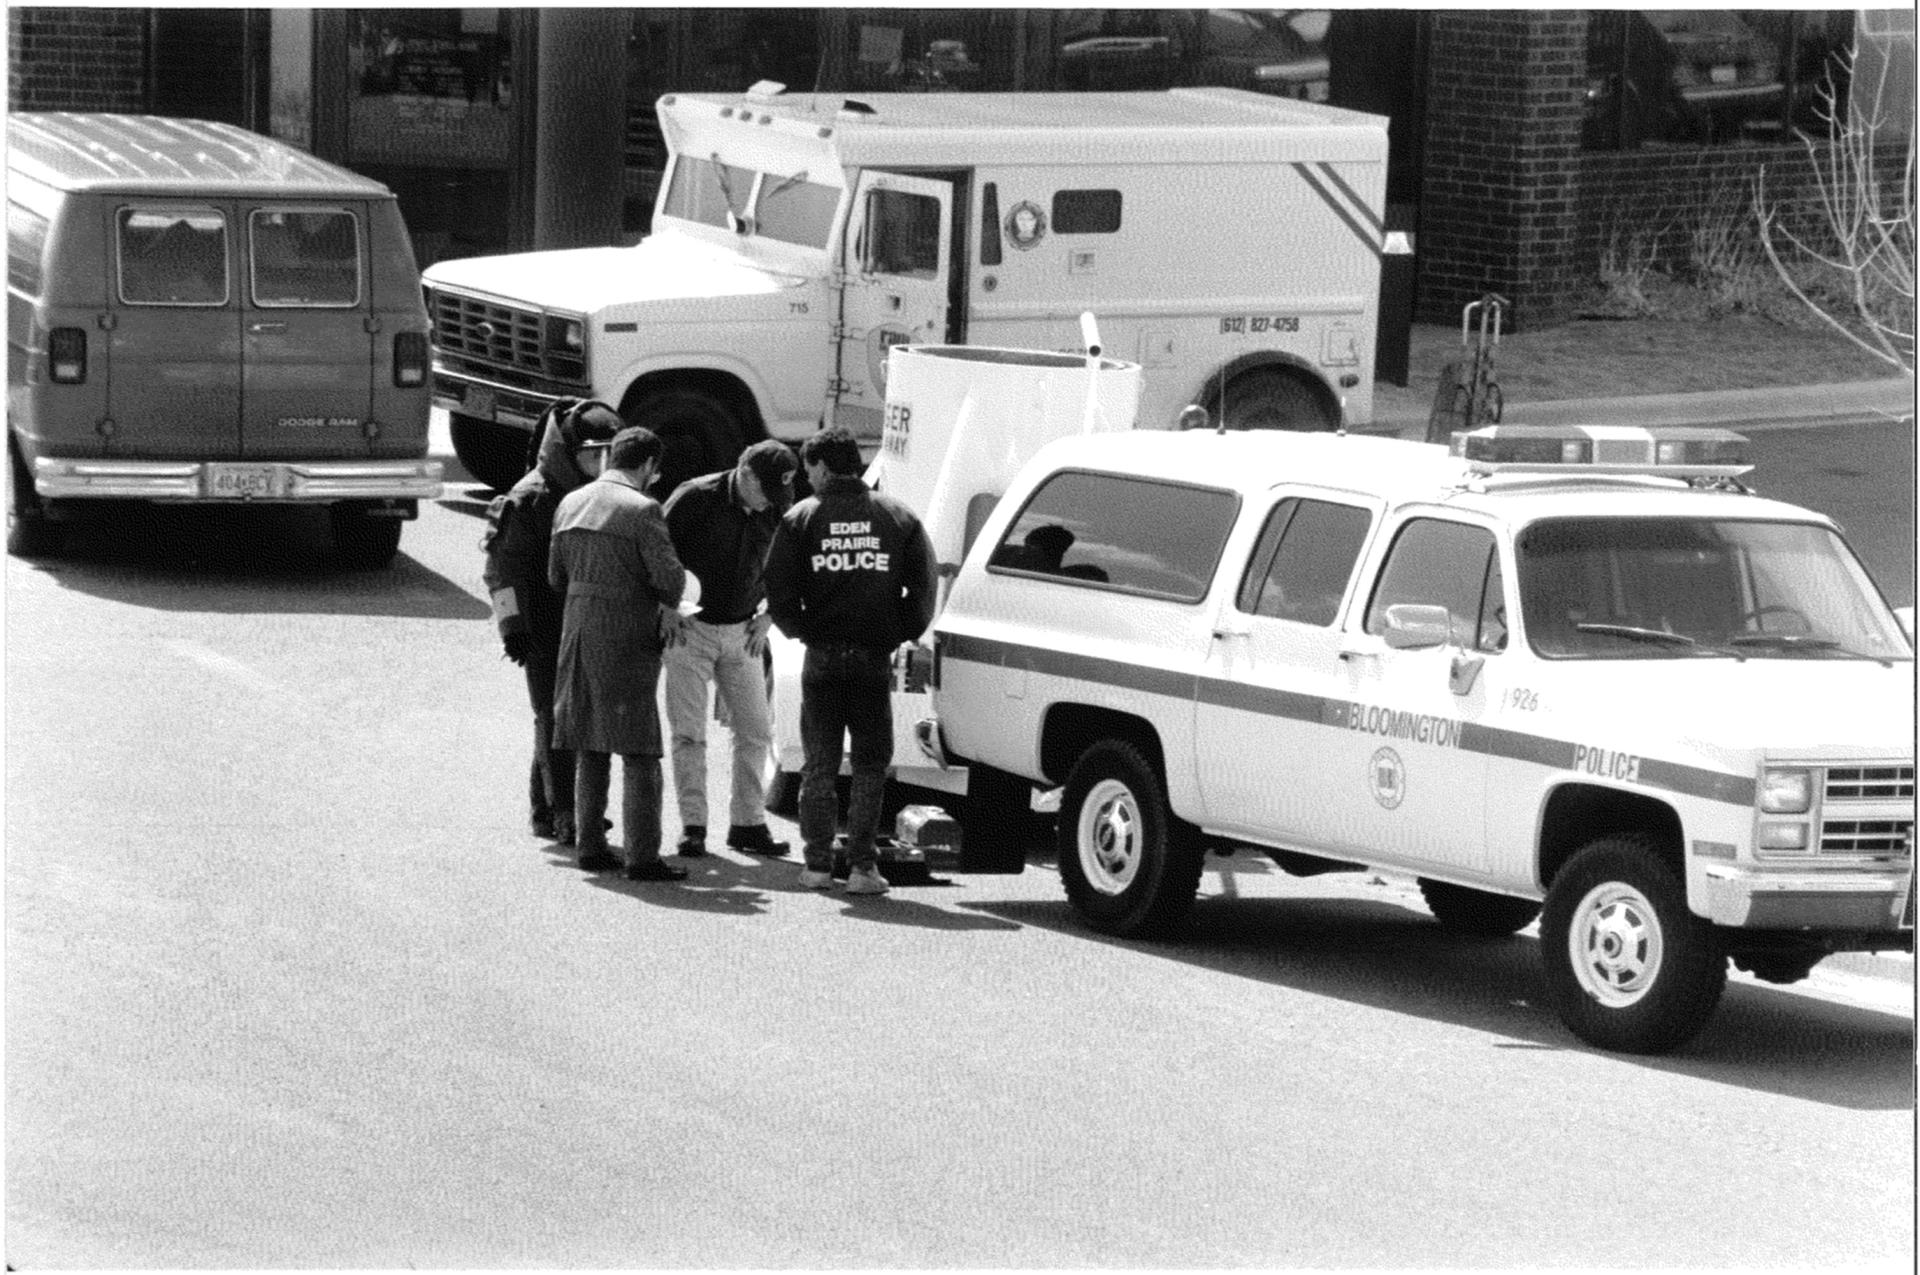 armored truck robbery - cropped